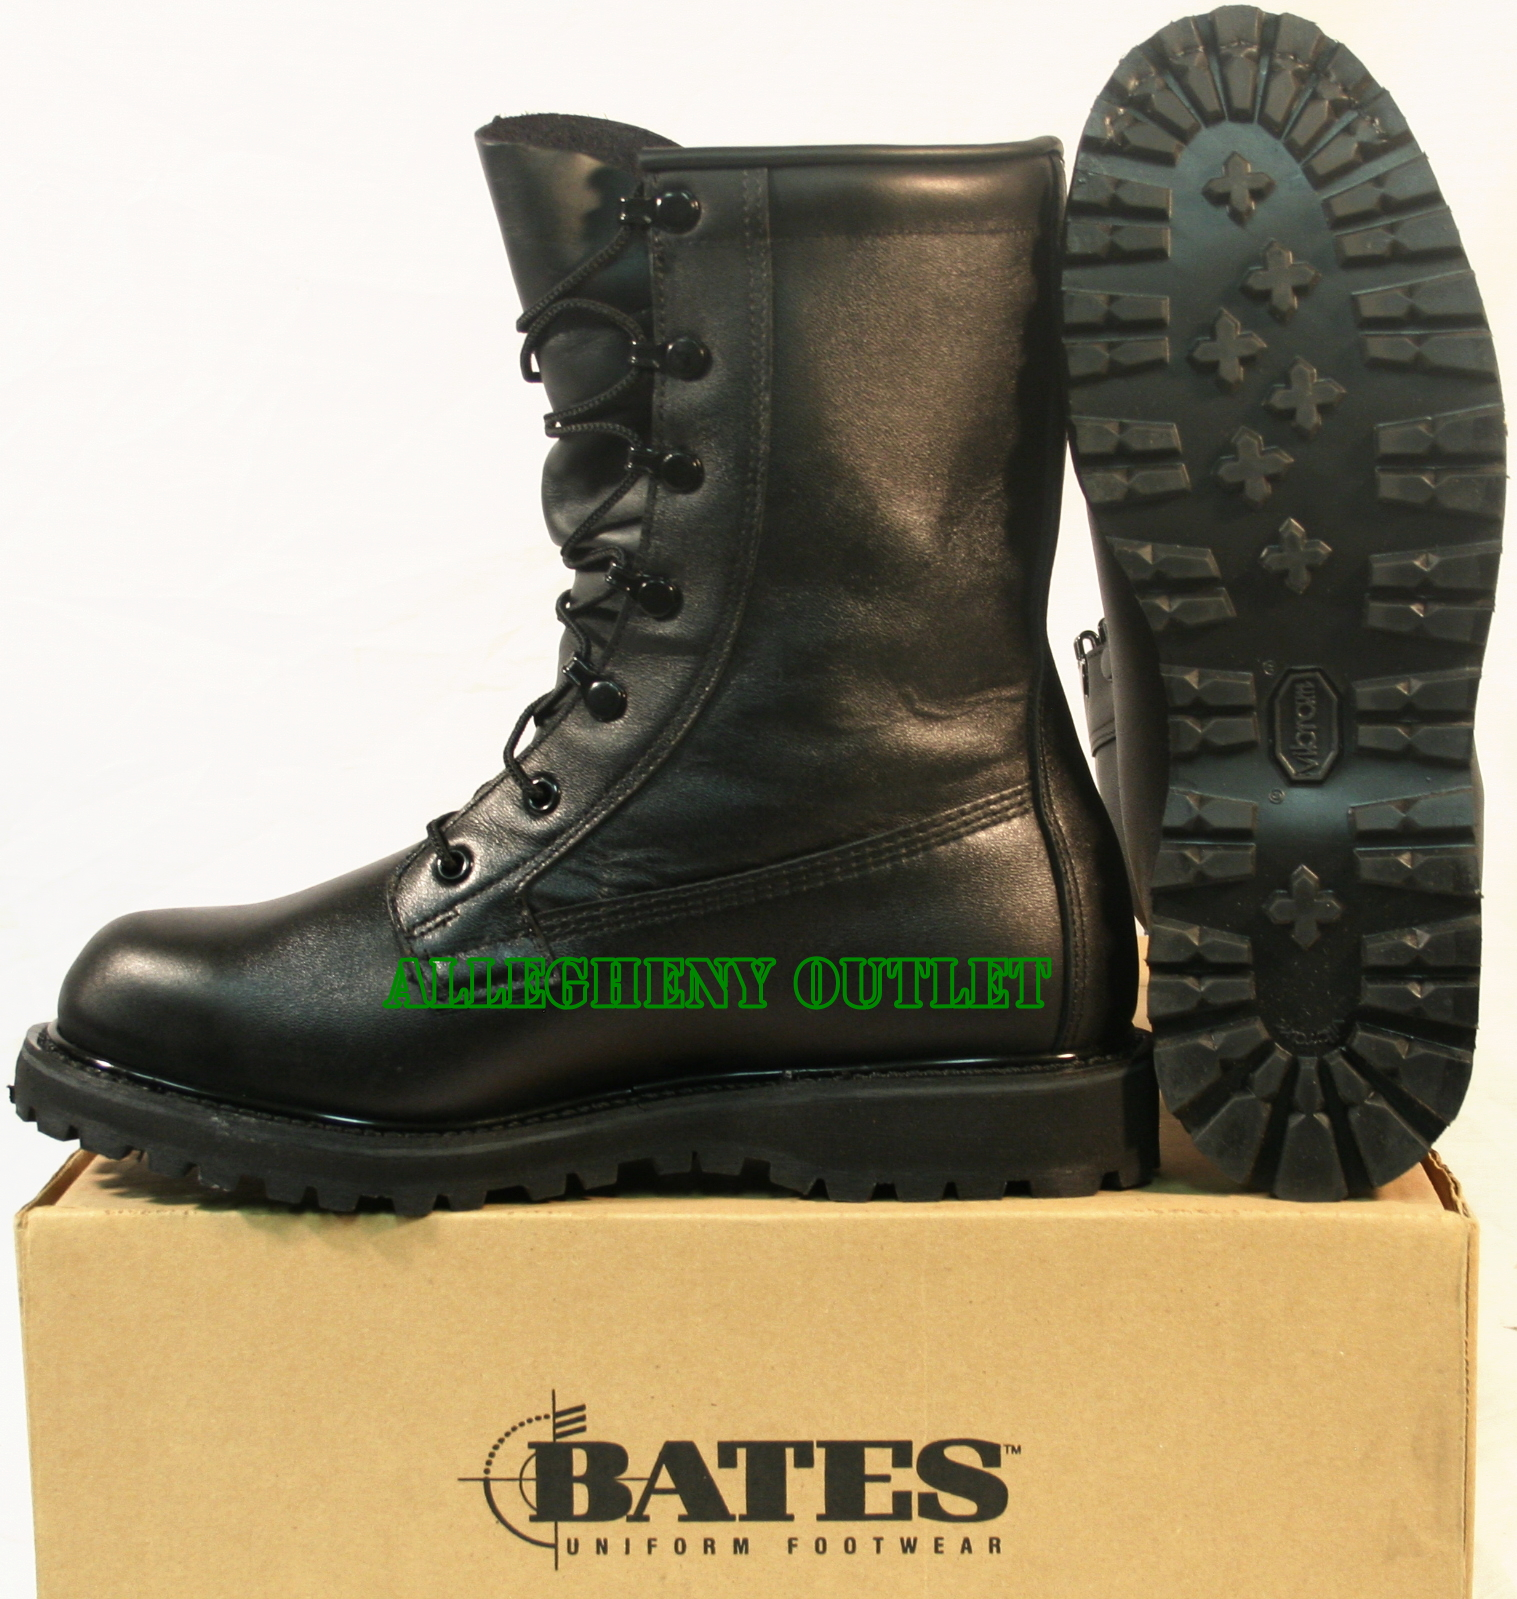 Bates WATERPROOF Military LEATHER Goretex COMBAT BOOTS w/ BOOTIES ...